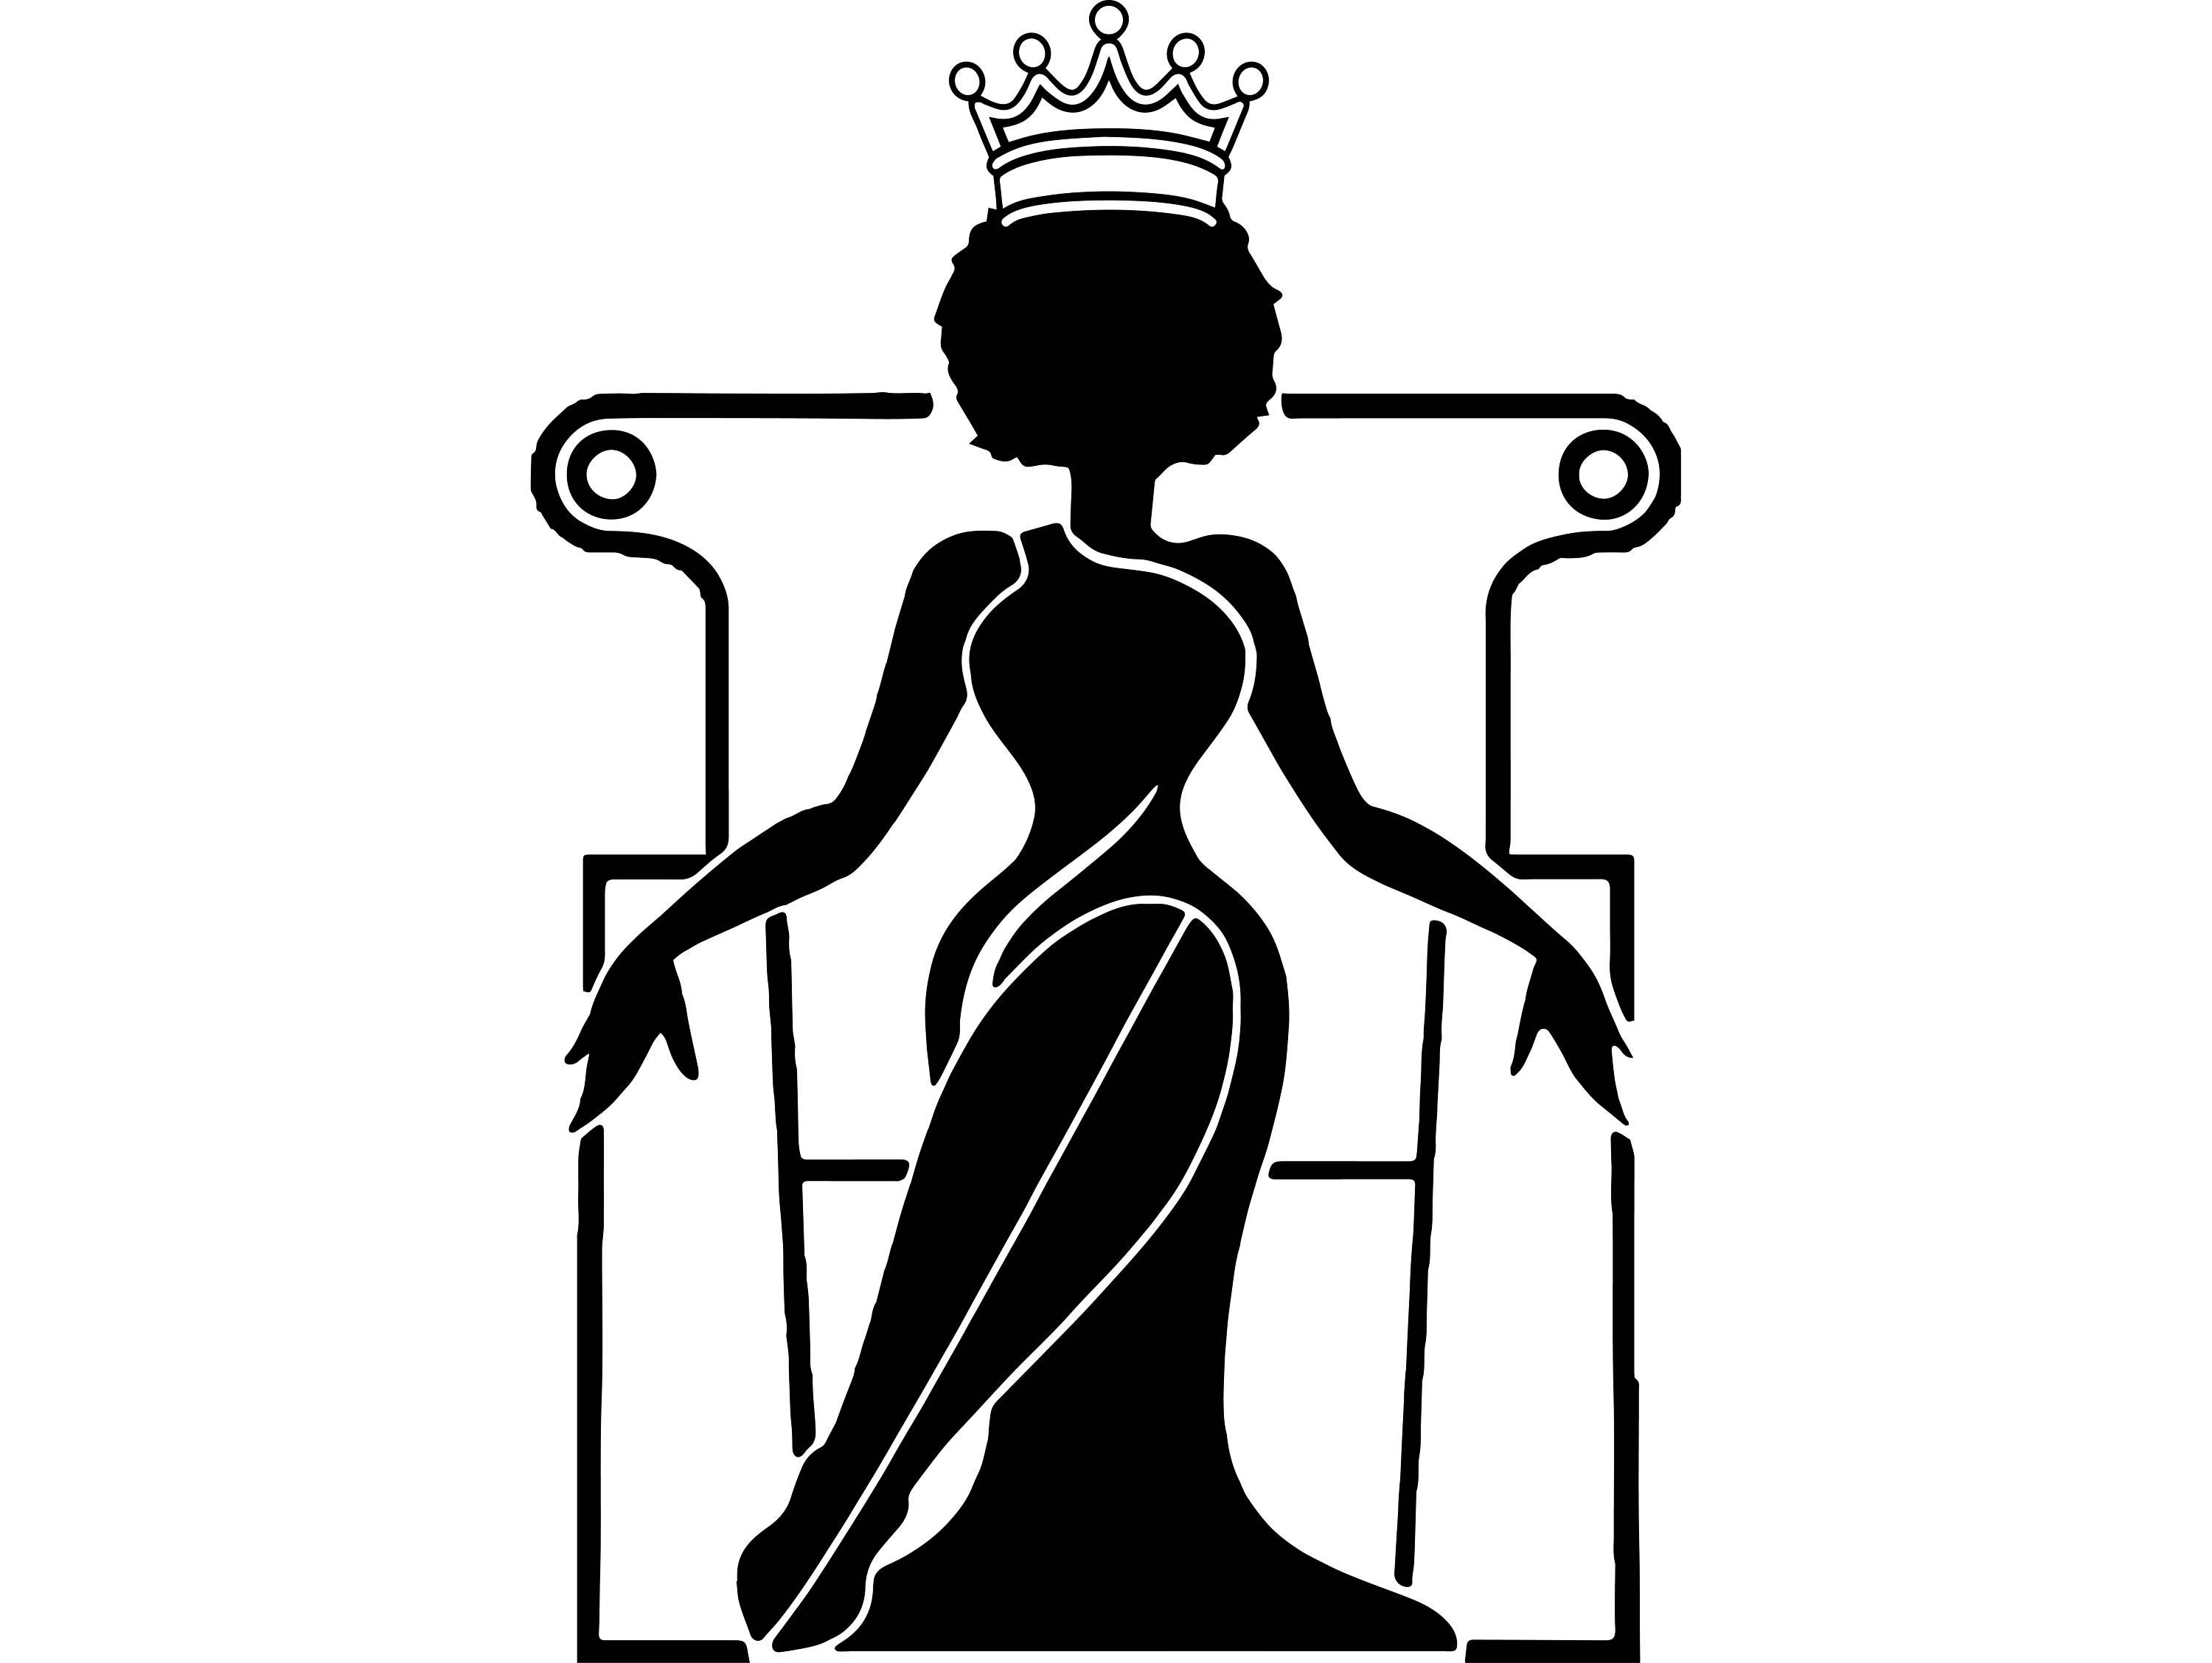 Queen Silhouette Vector At Getdrawings